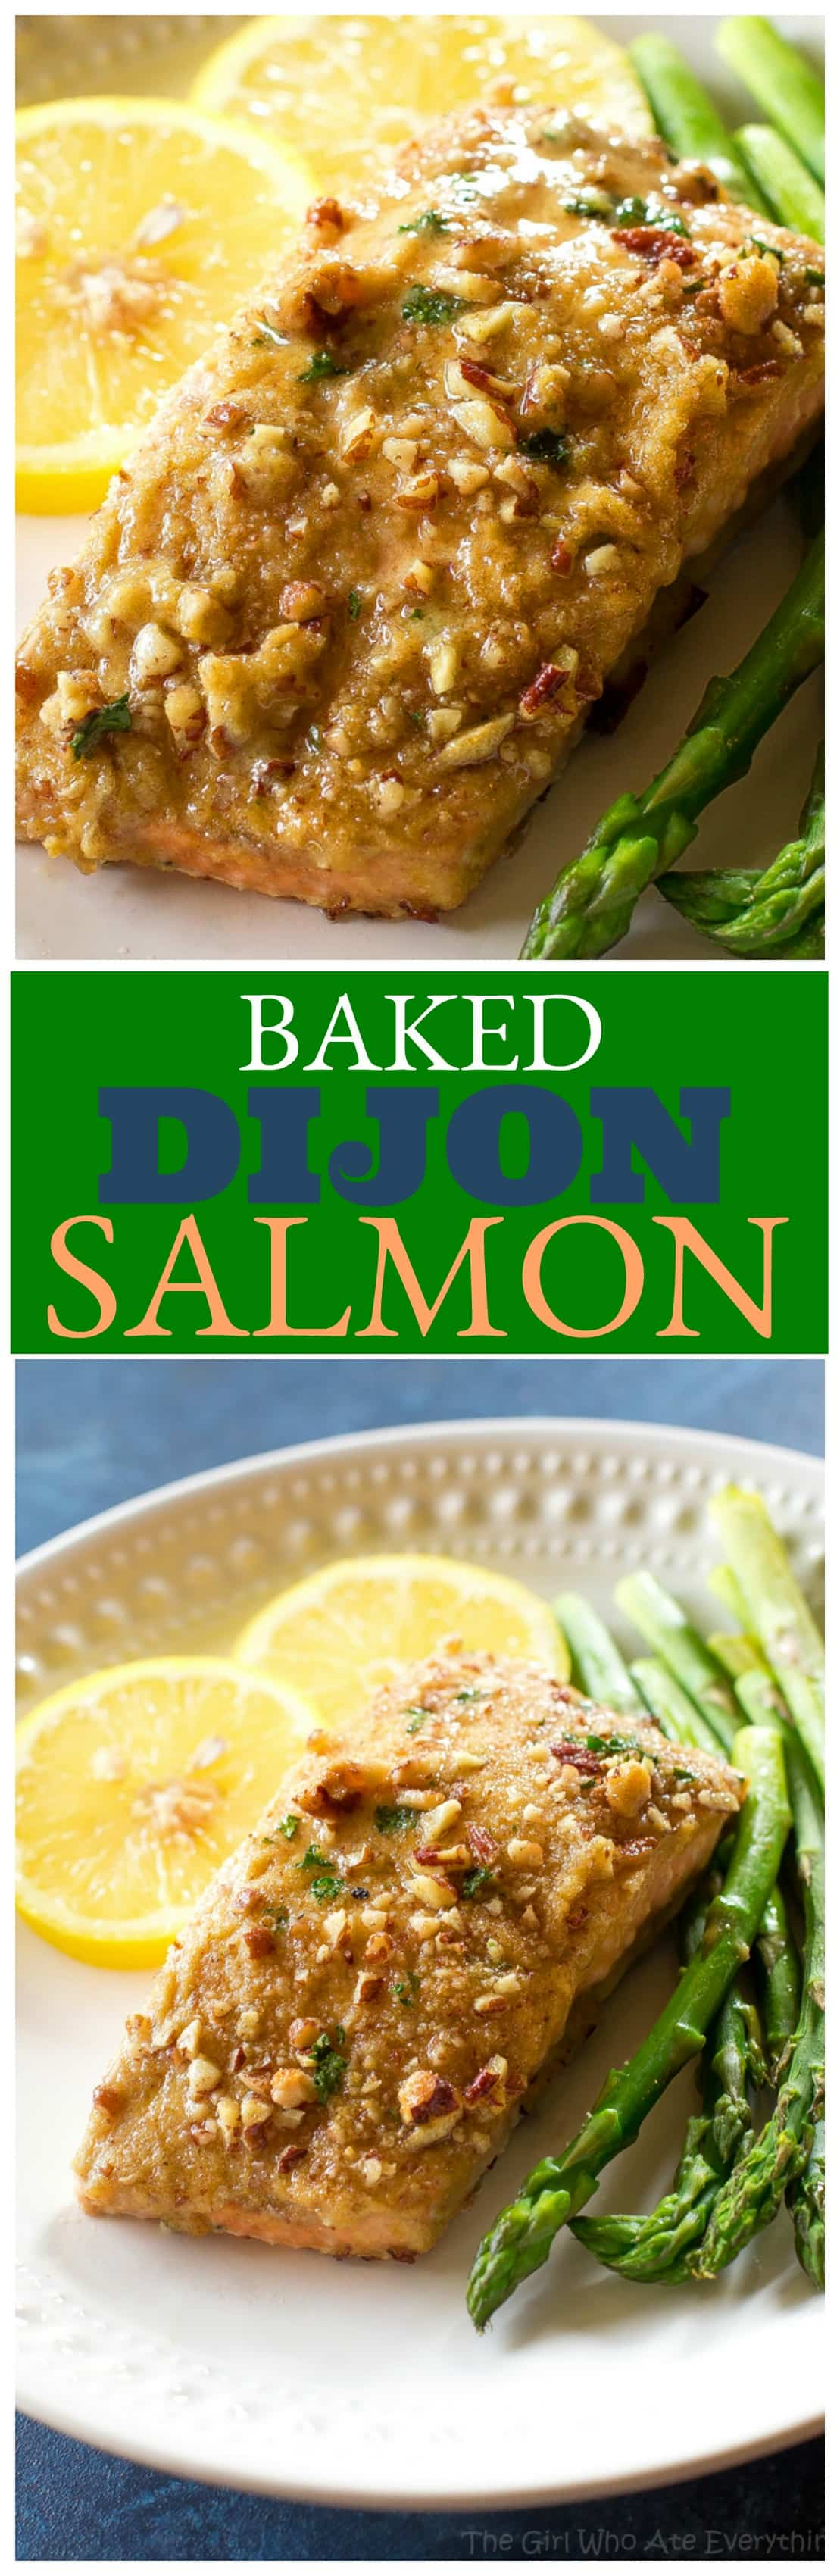 Baked Dijon Salmon - salmon topped with honey, dijon mustard, pecans, and breadcrumbs. An easy weeknight dinner. #baked #dijon #salmon #recipe